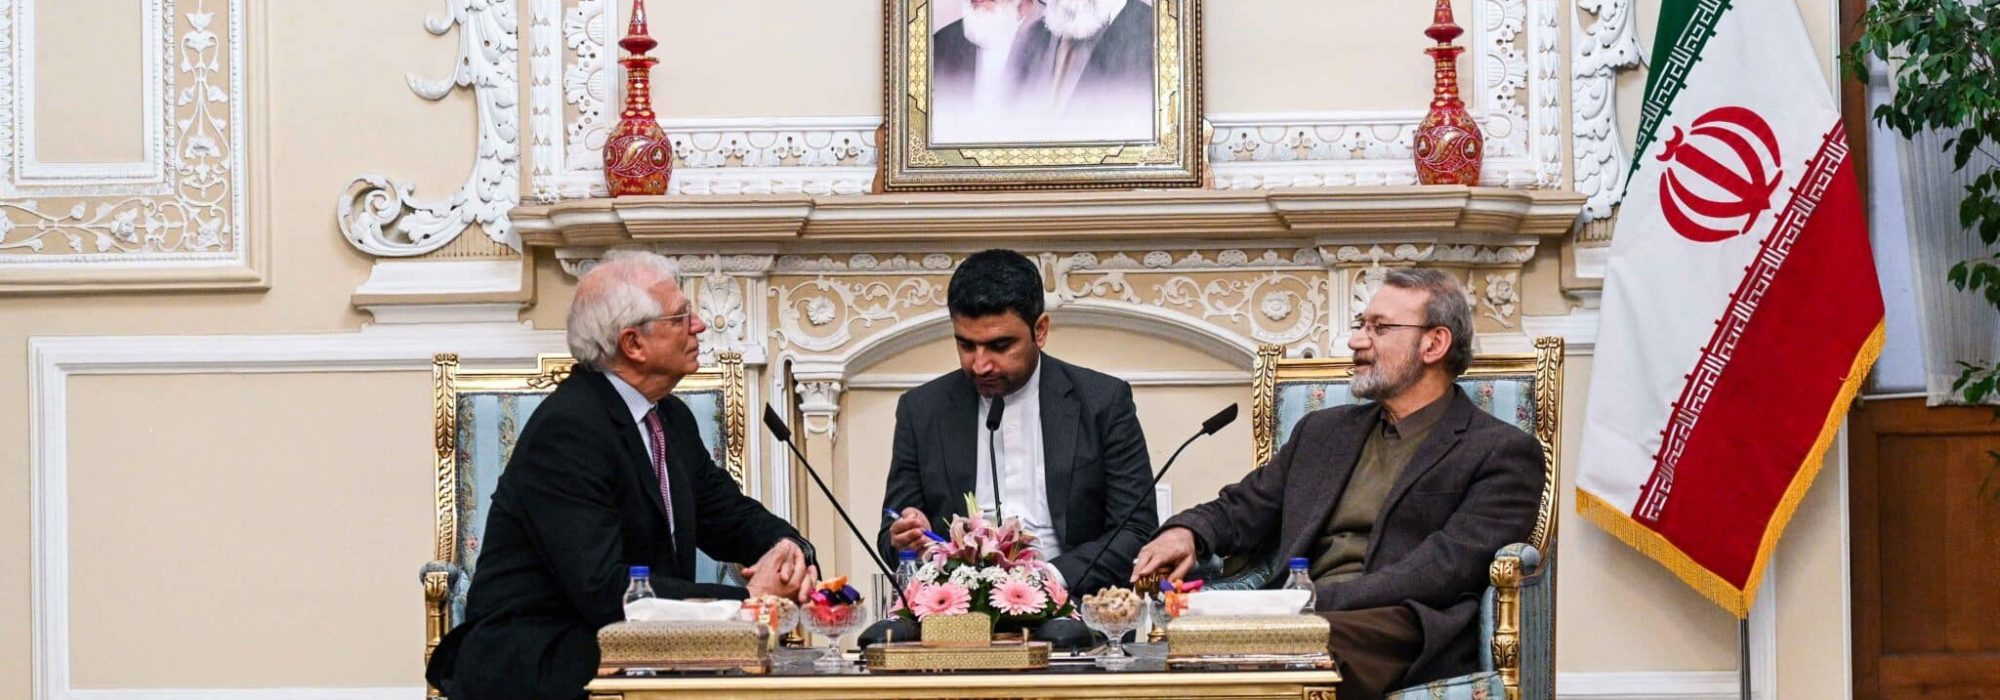 Josep Borrell Fontelles, High Representative of the Union for Foreign Affairs and Security Policy, on the left, meets with Majlis Speaker Ali Larijani, on the right, n Tehran, Iran on February 03, 2020.